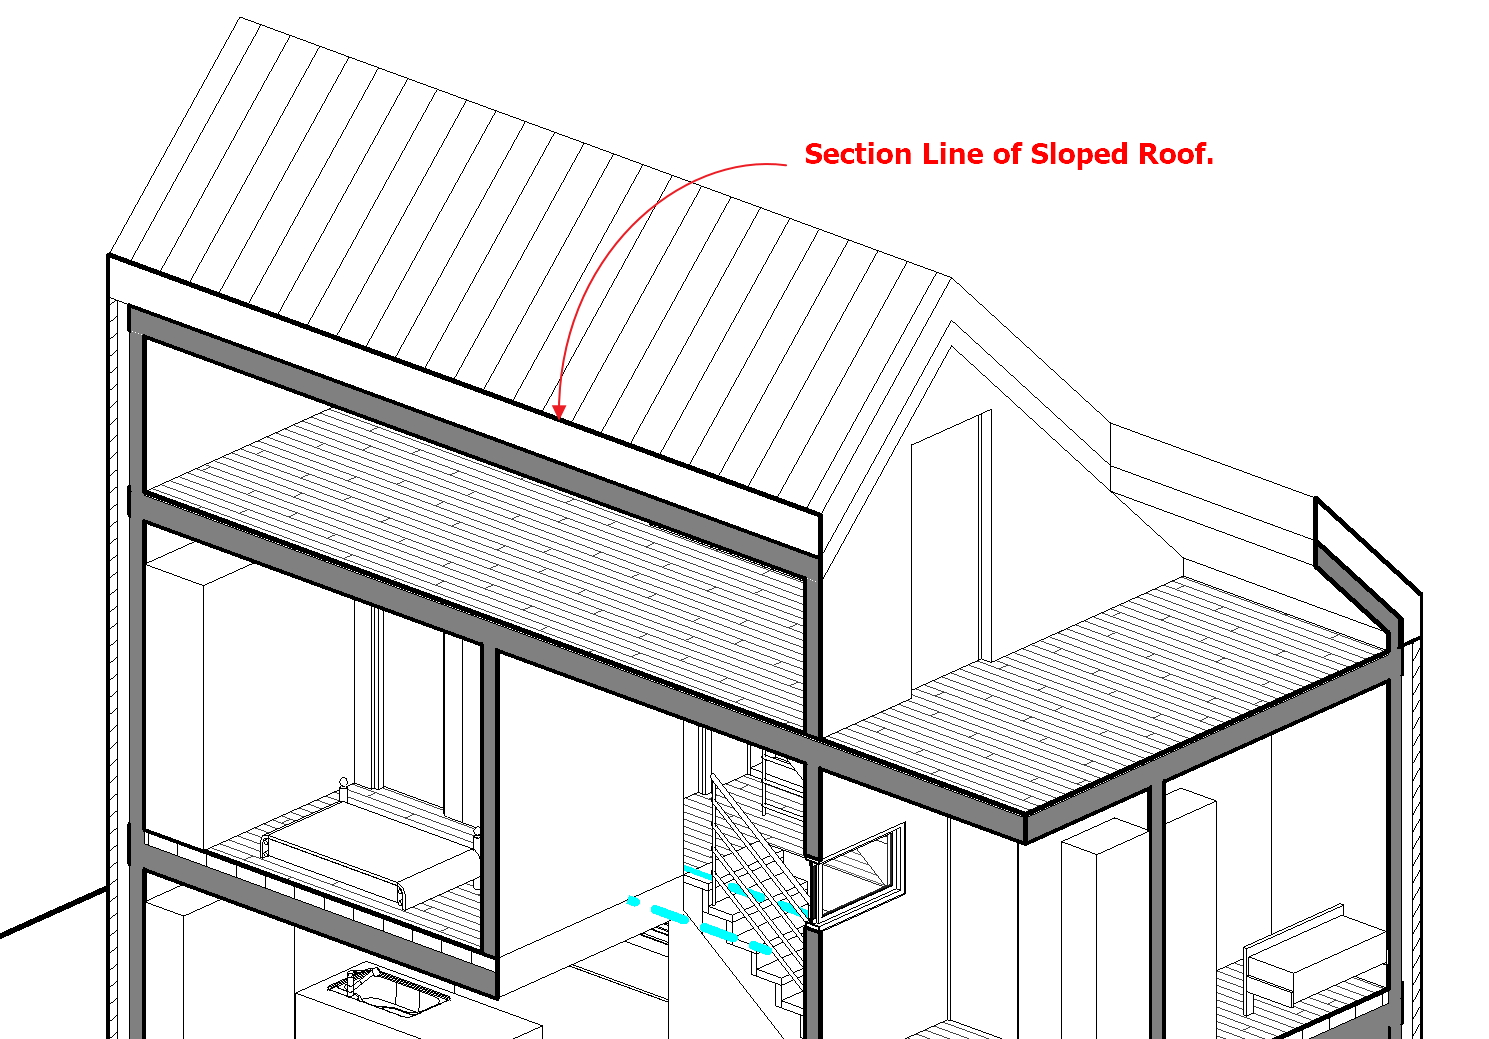 revit how to draw ground line section